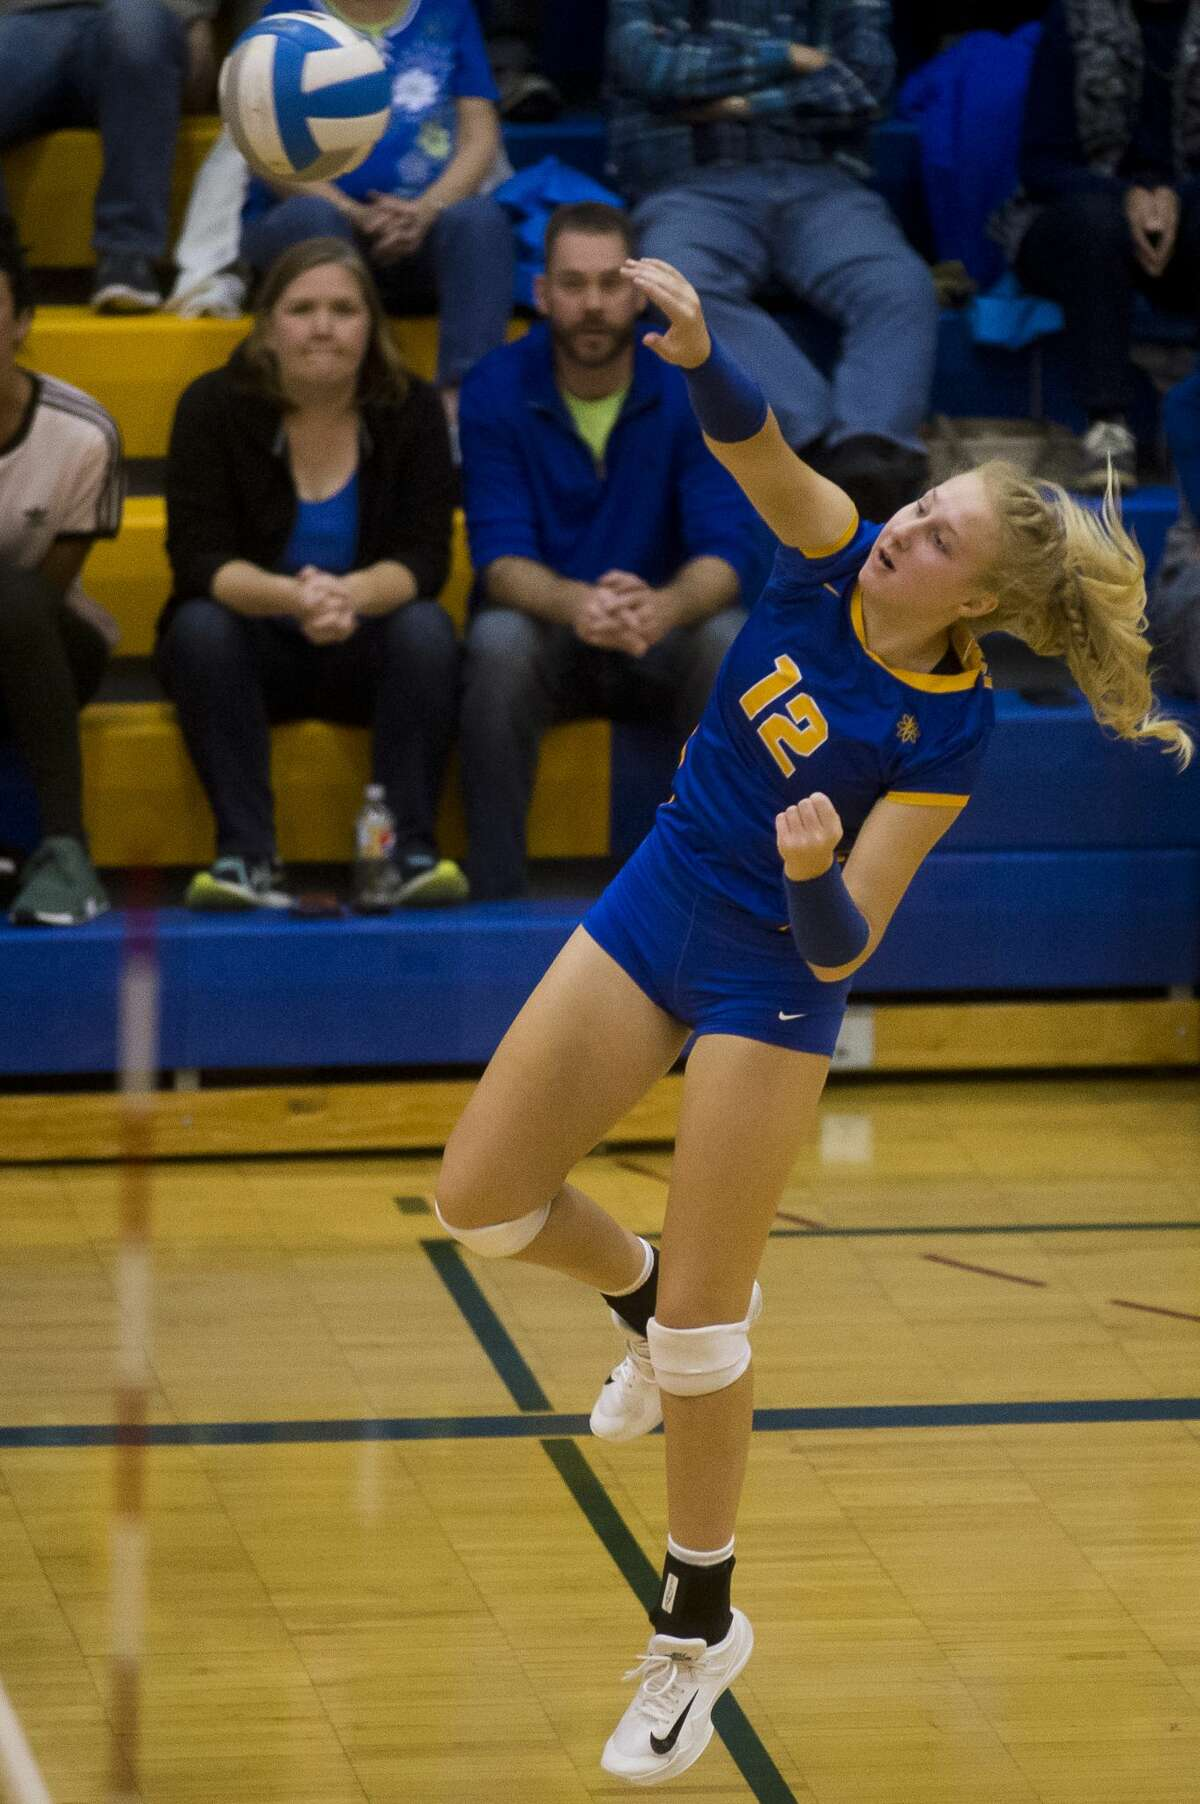 Midland junior Maya Albright spikes the ball during a match against Dow on Tuesday, Oct. 24, 2017 at Midland High. (Katy Kildee/kkildee@mdn.net)